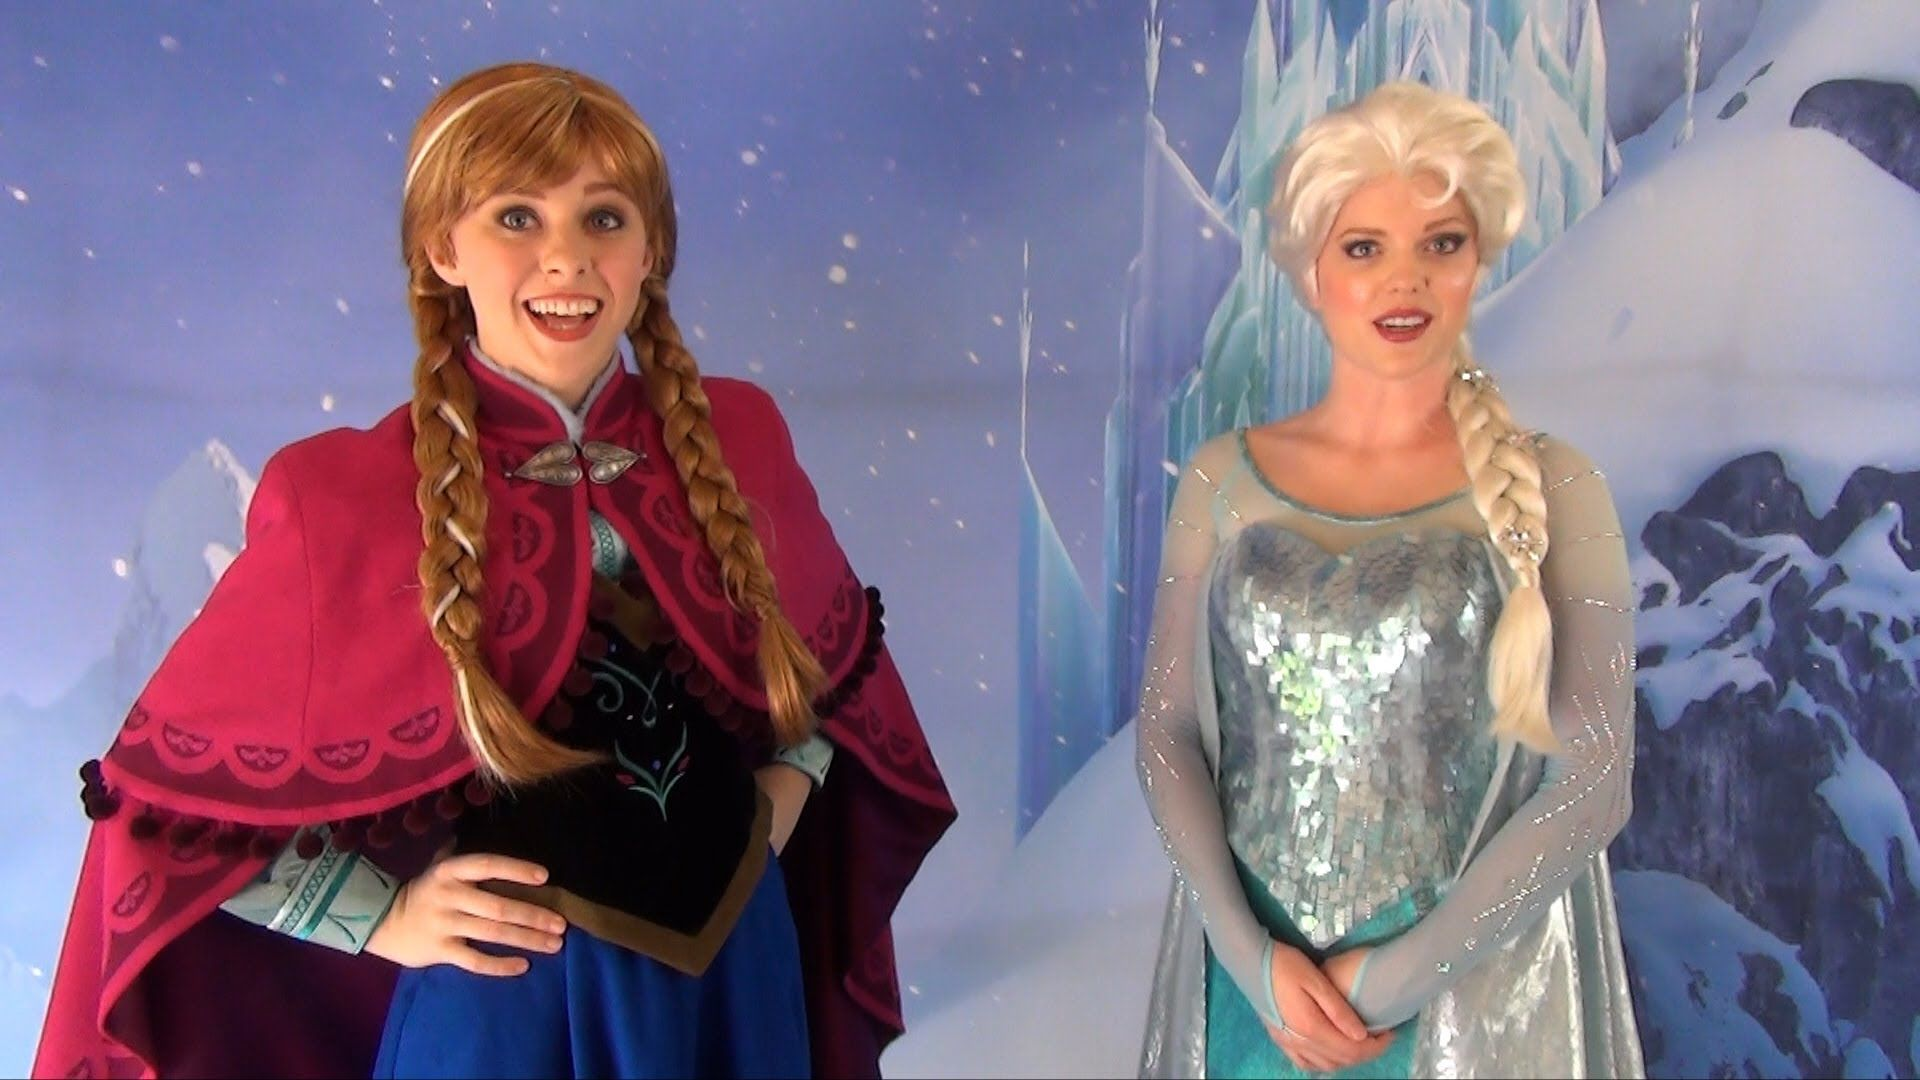 We Met Anna And Elsa From Frozen Today At Disneys Hollywood